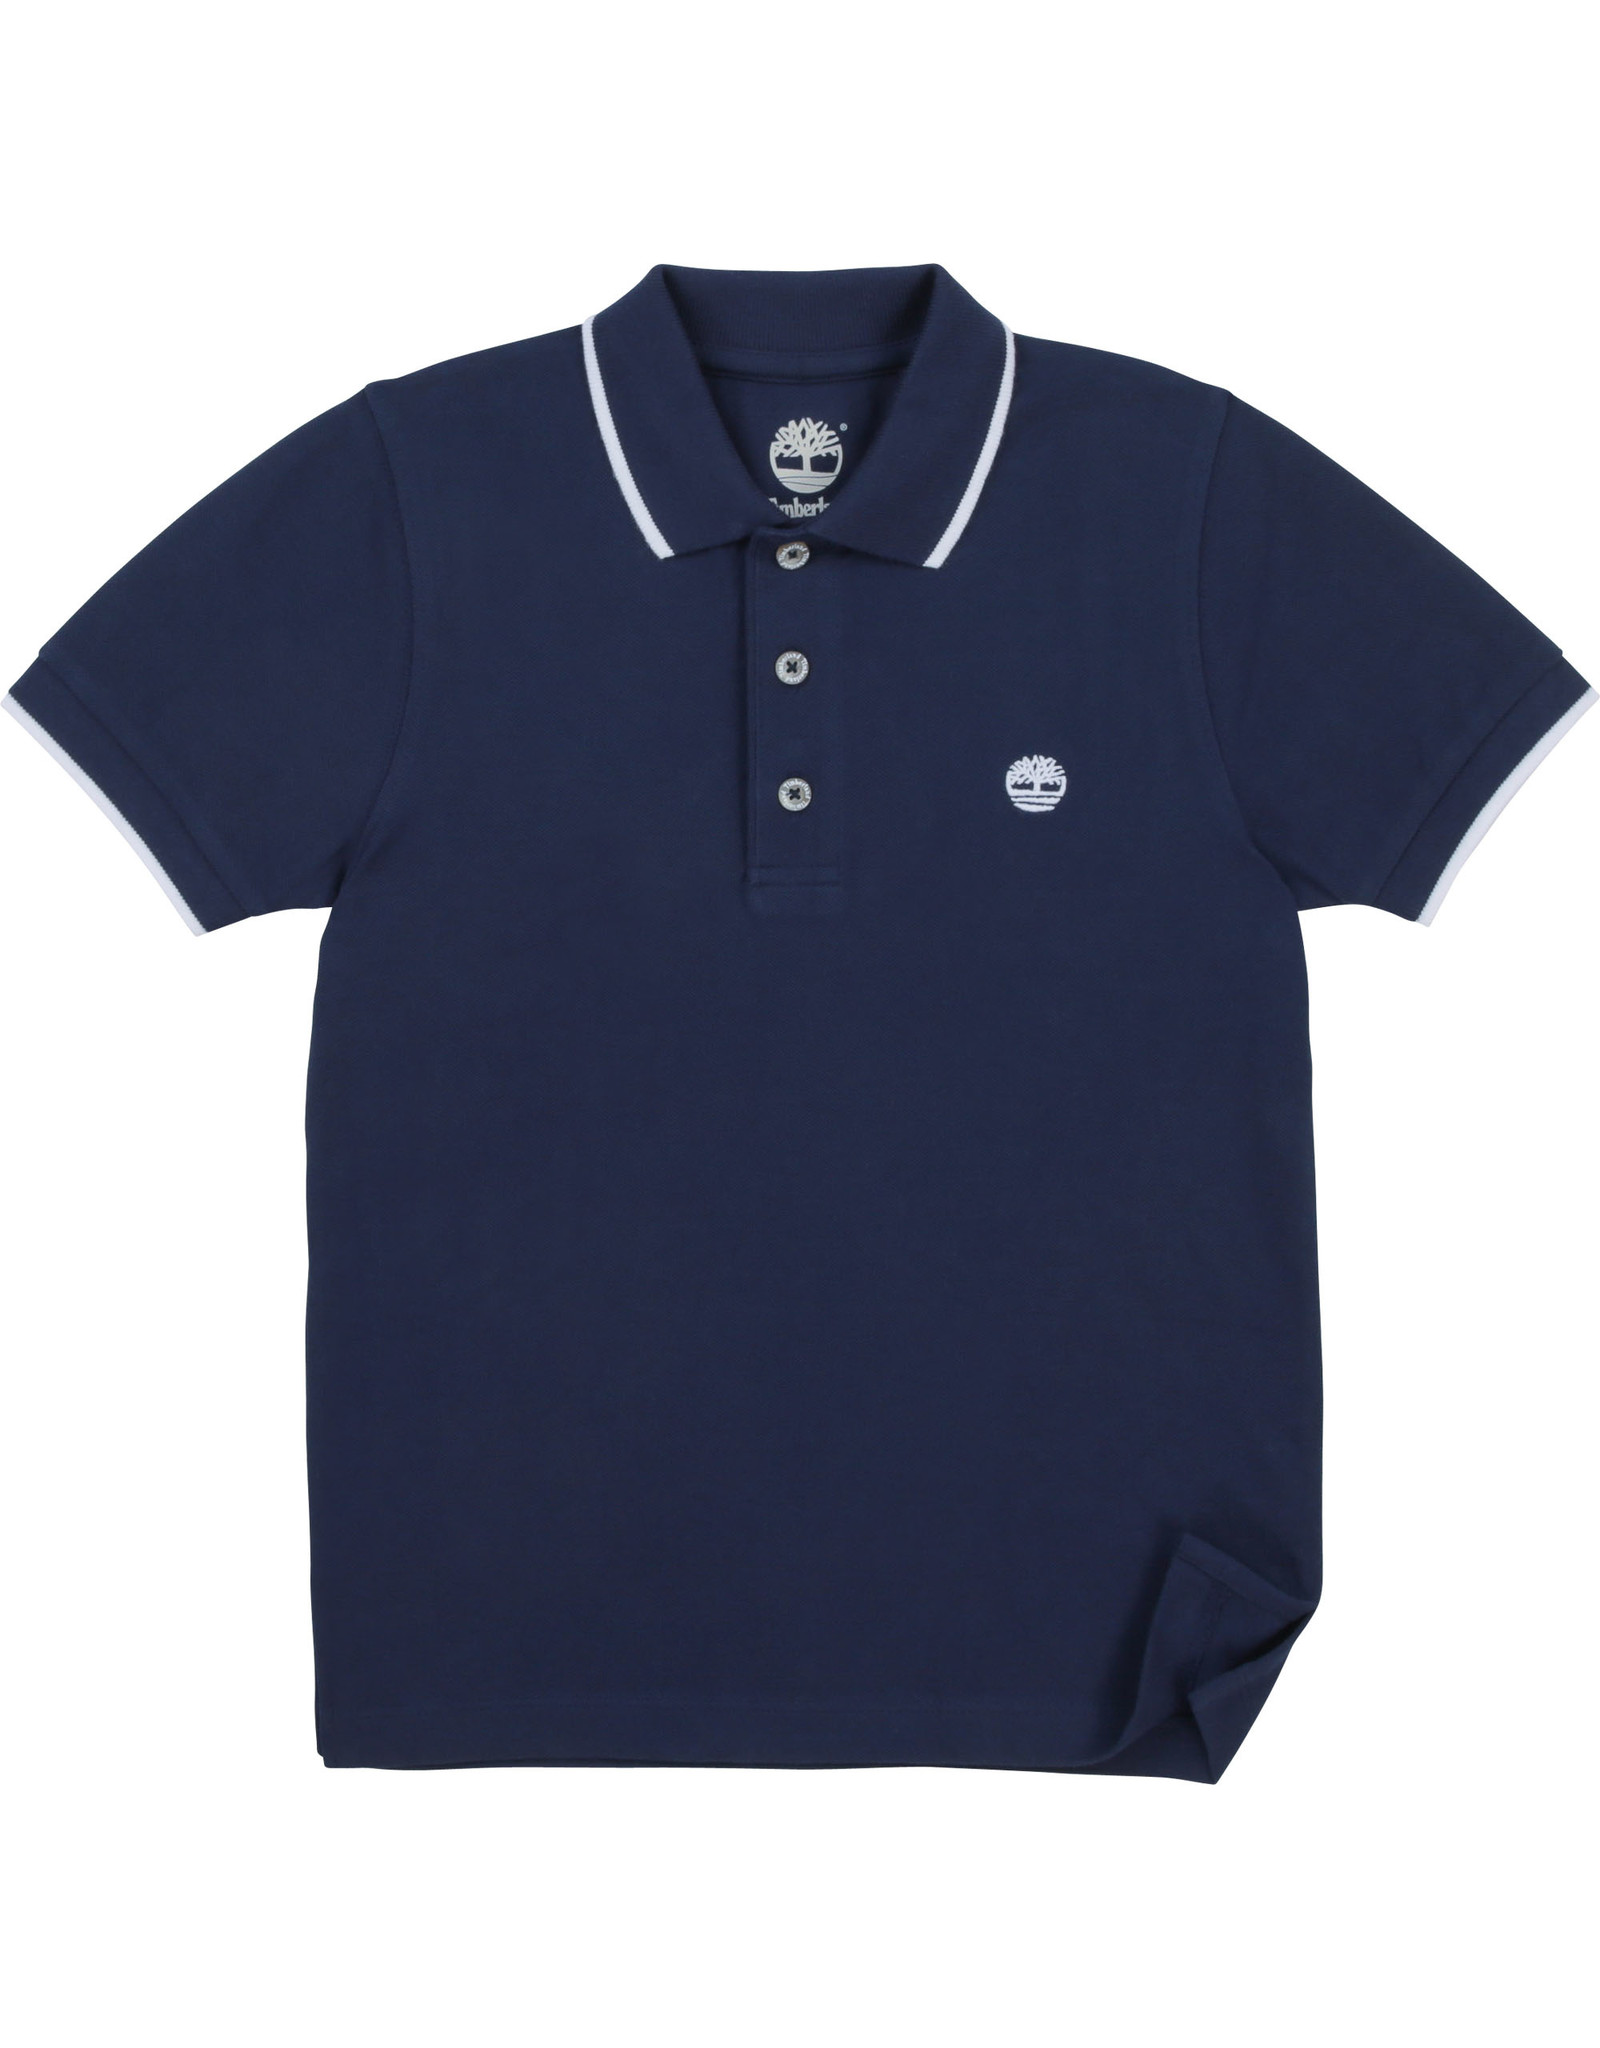 Timberland SS21 T25P21 Polo